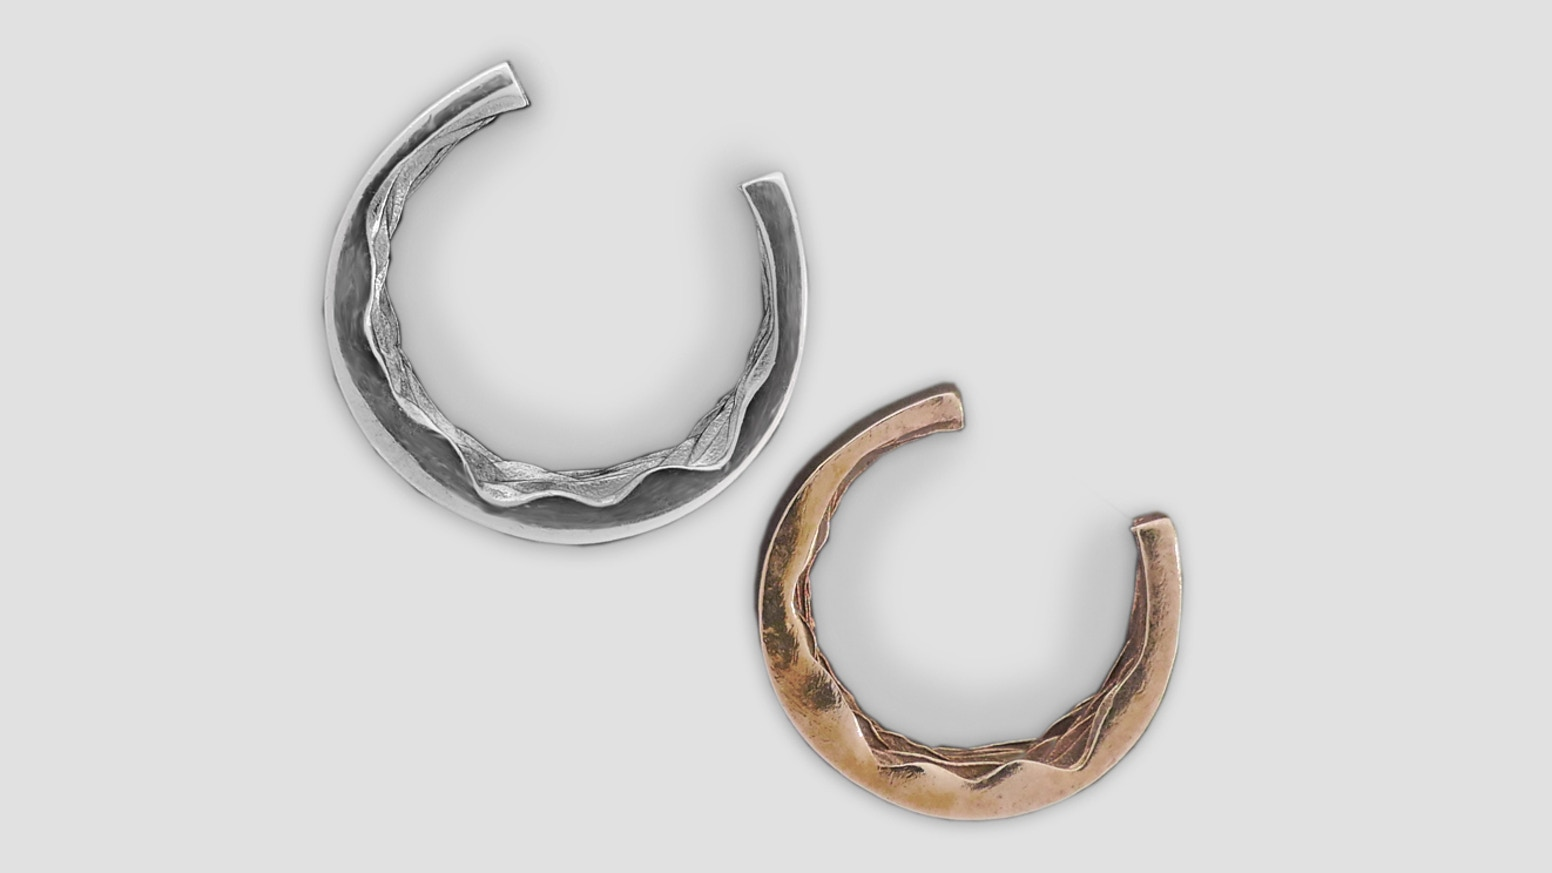 Liud is a textural memory, a ring from inside. Shy but Sensual. A touch you share with your love. Evoking senses beyond the visuals.